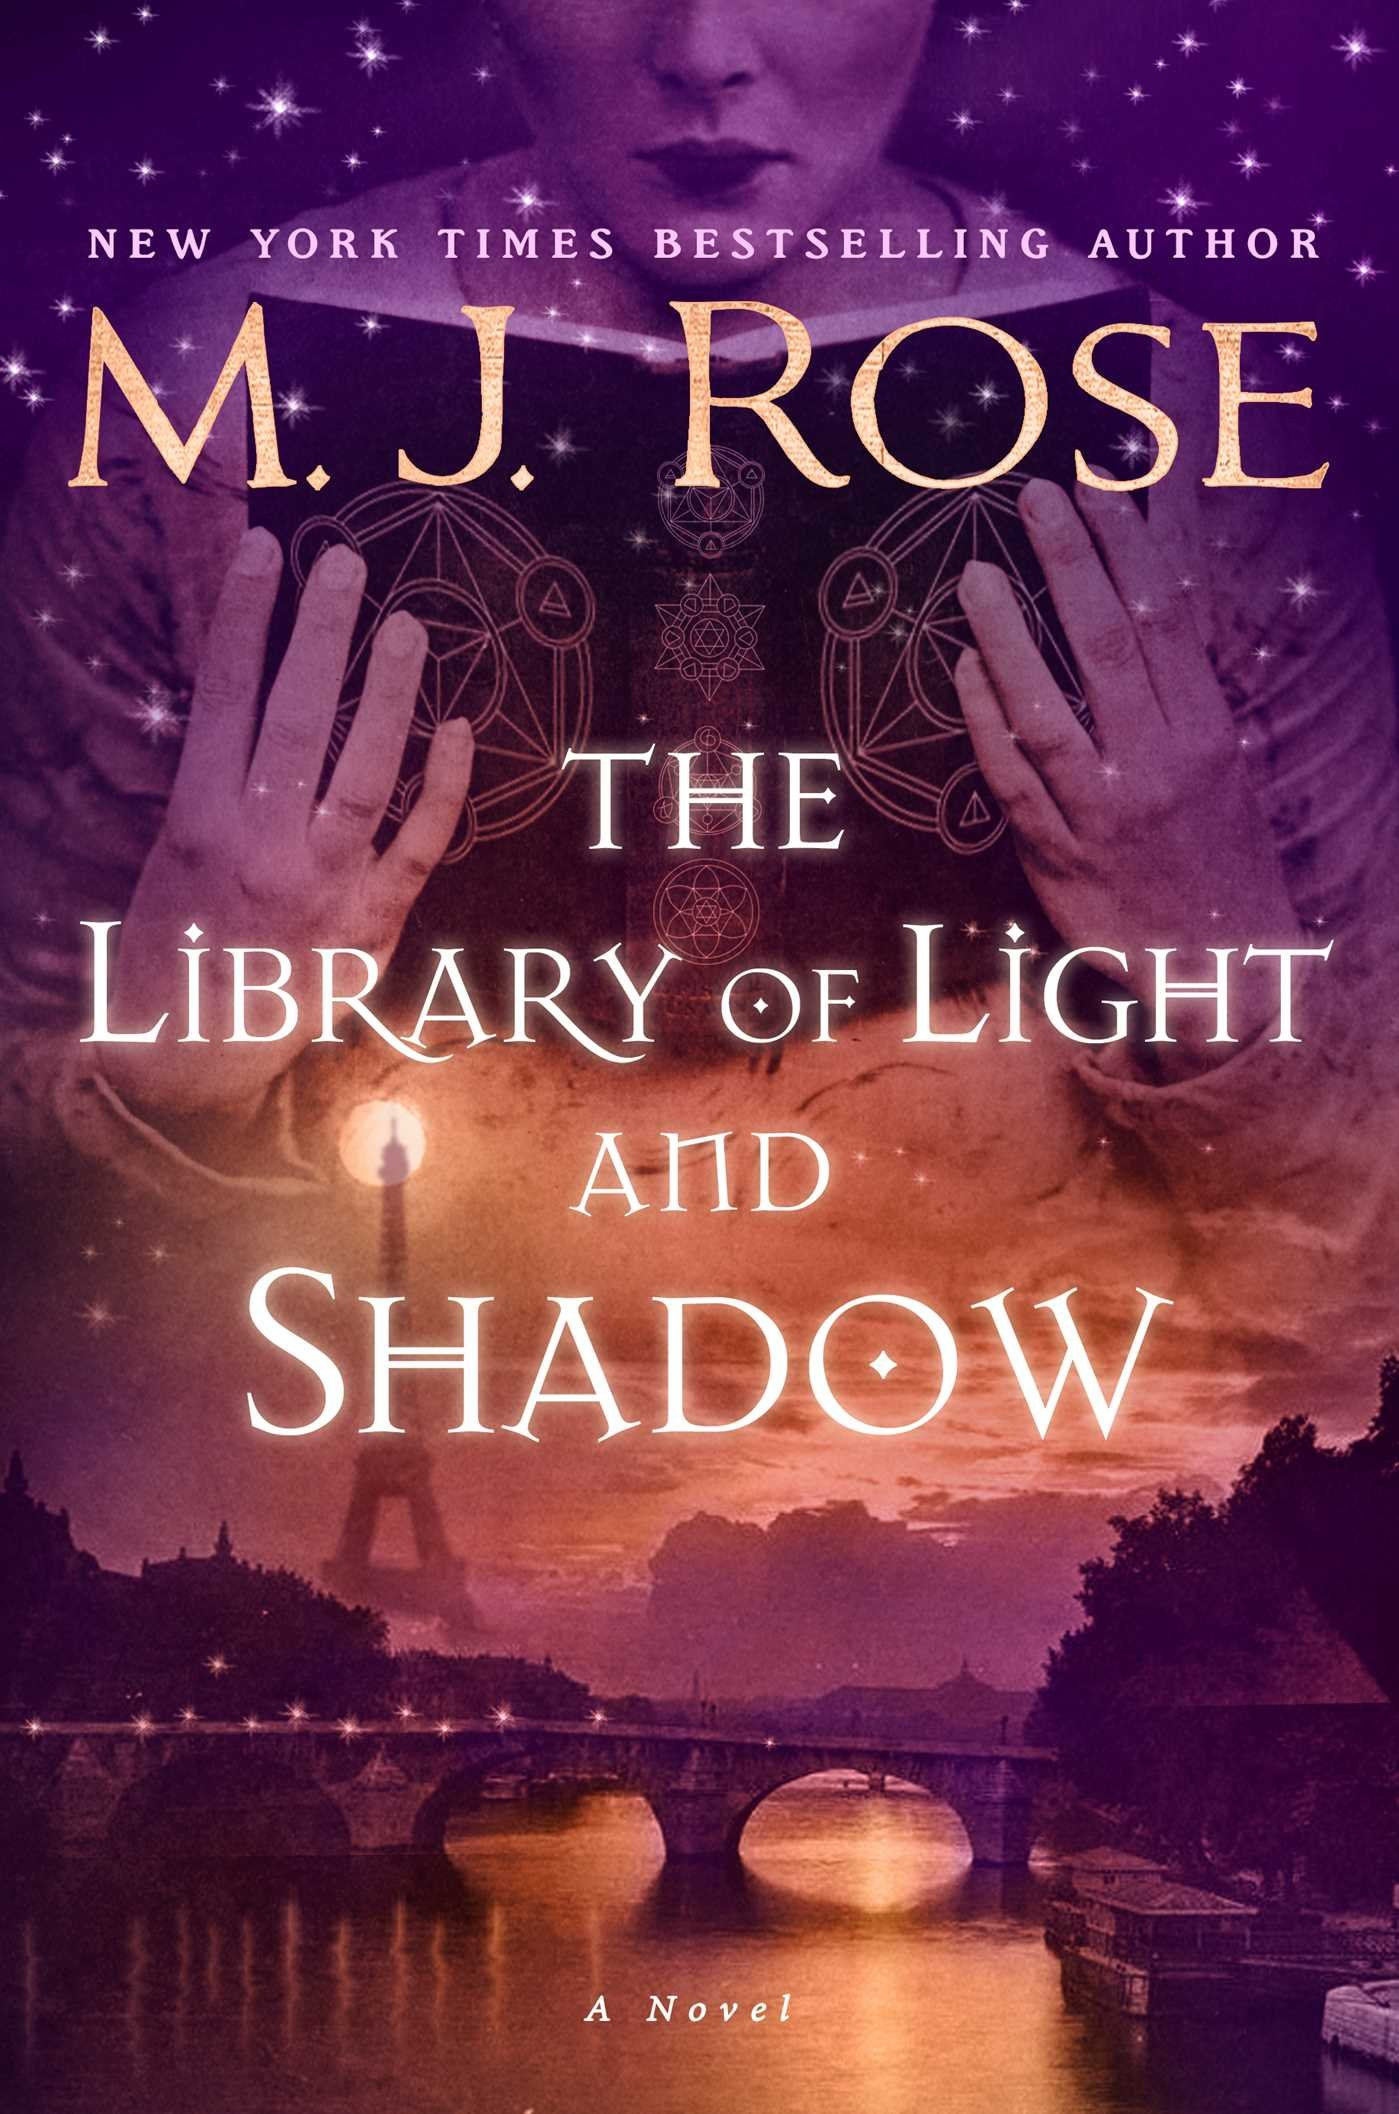 The Library of Light and Shadow: A Novel by ATRIA